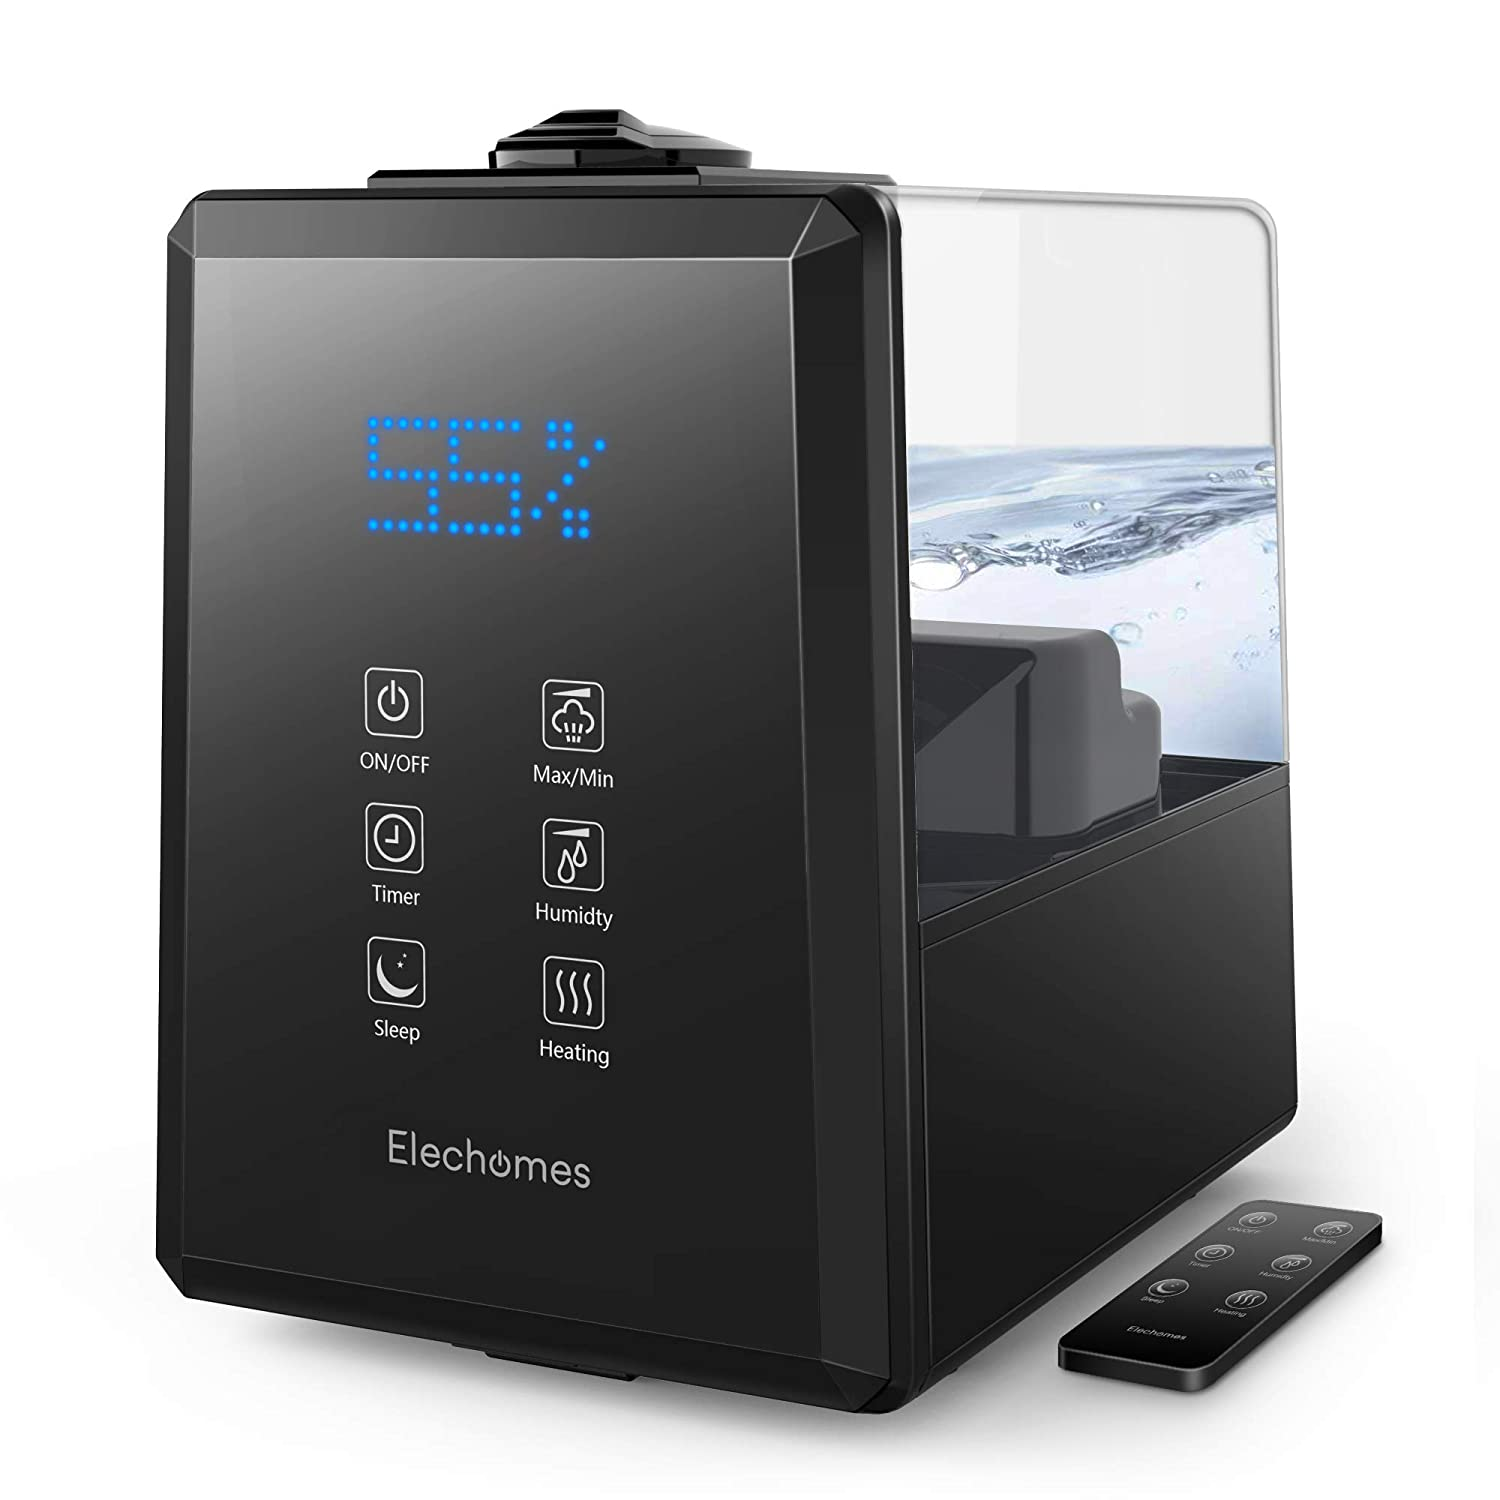 7 Best Humidifier for Nosebleeds – Reviews and Buyer's Guide 2020 6